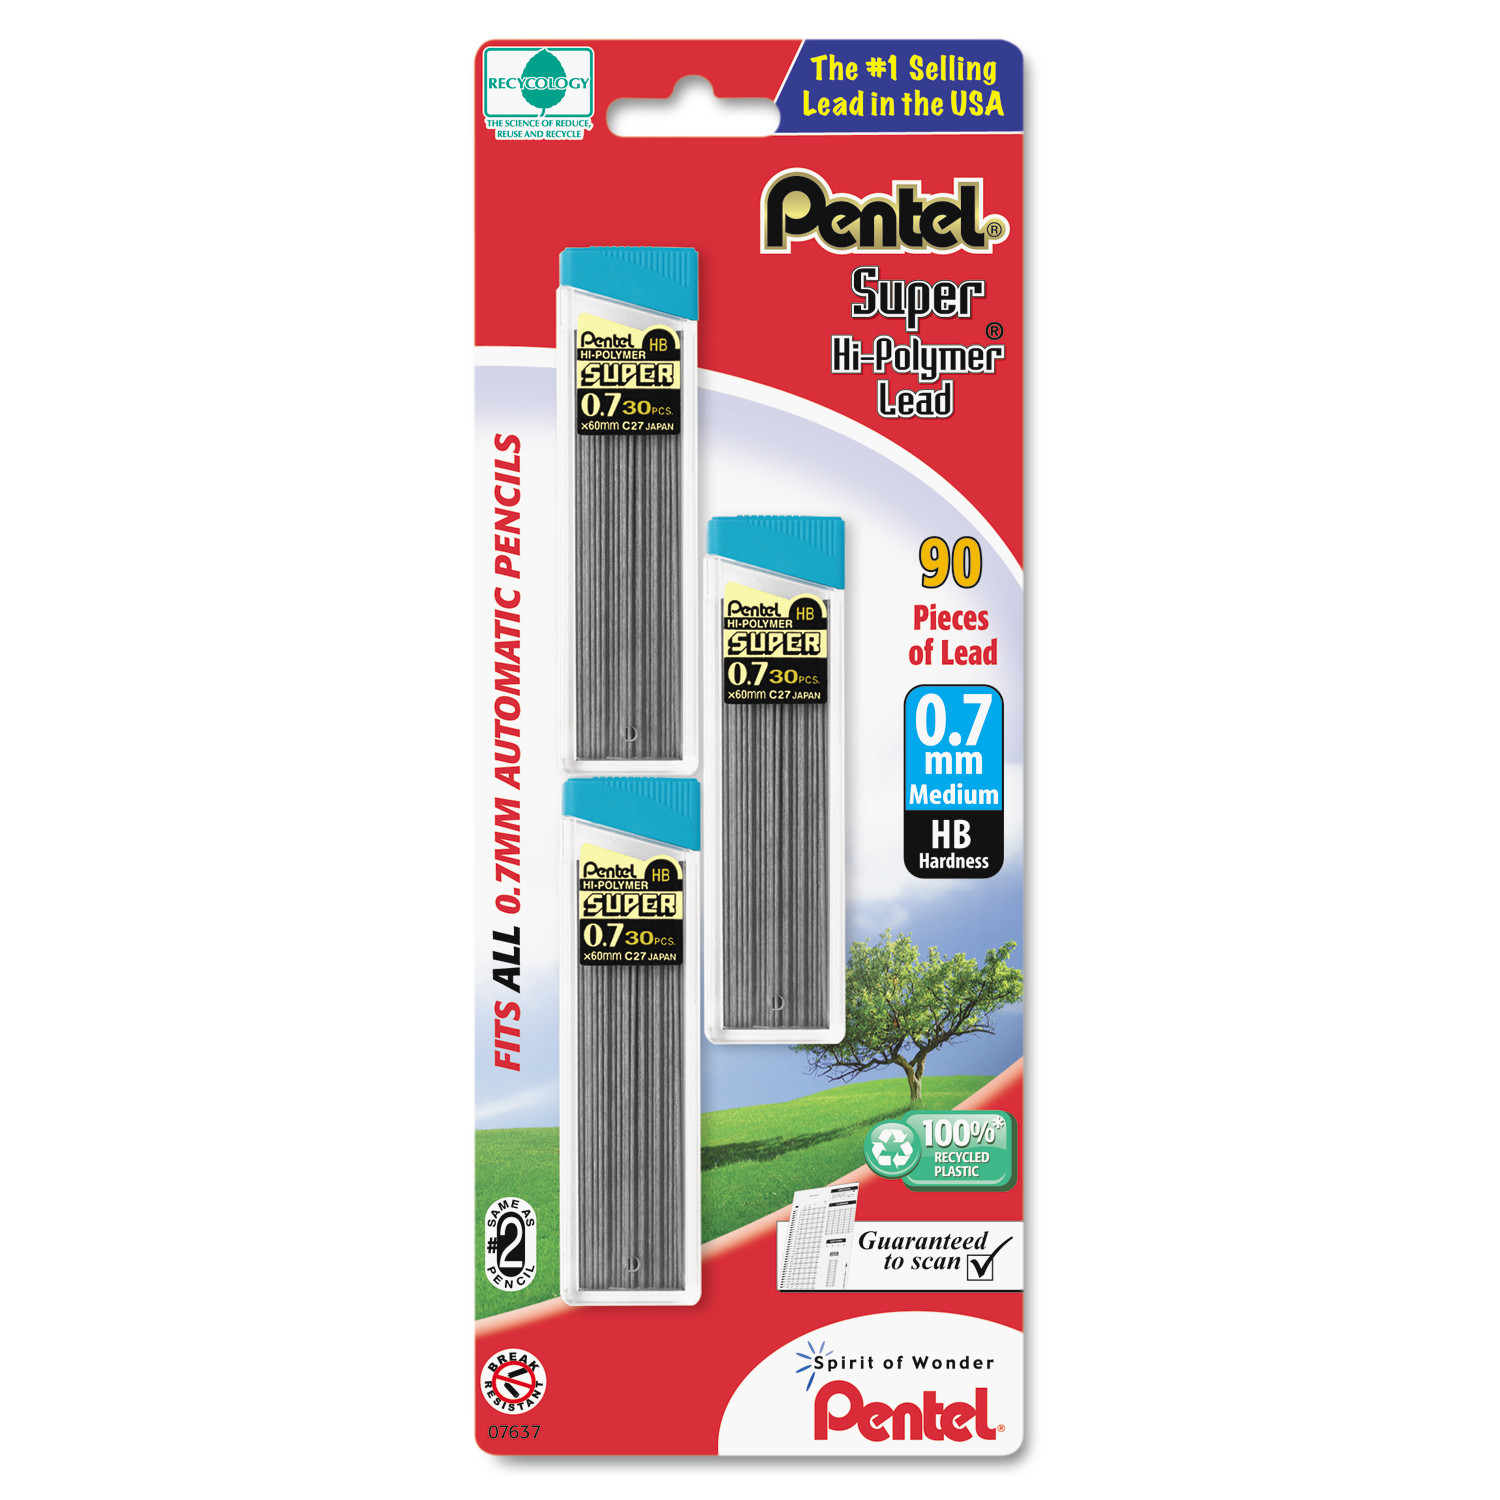 Pentel Super Hi-Polymer Lead Refills, 0.7mm, HB, Black, 30/Tube, 3 Tubes/Pack